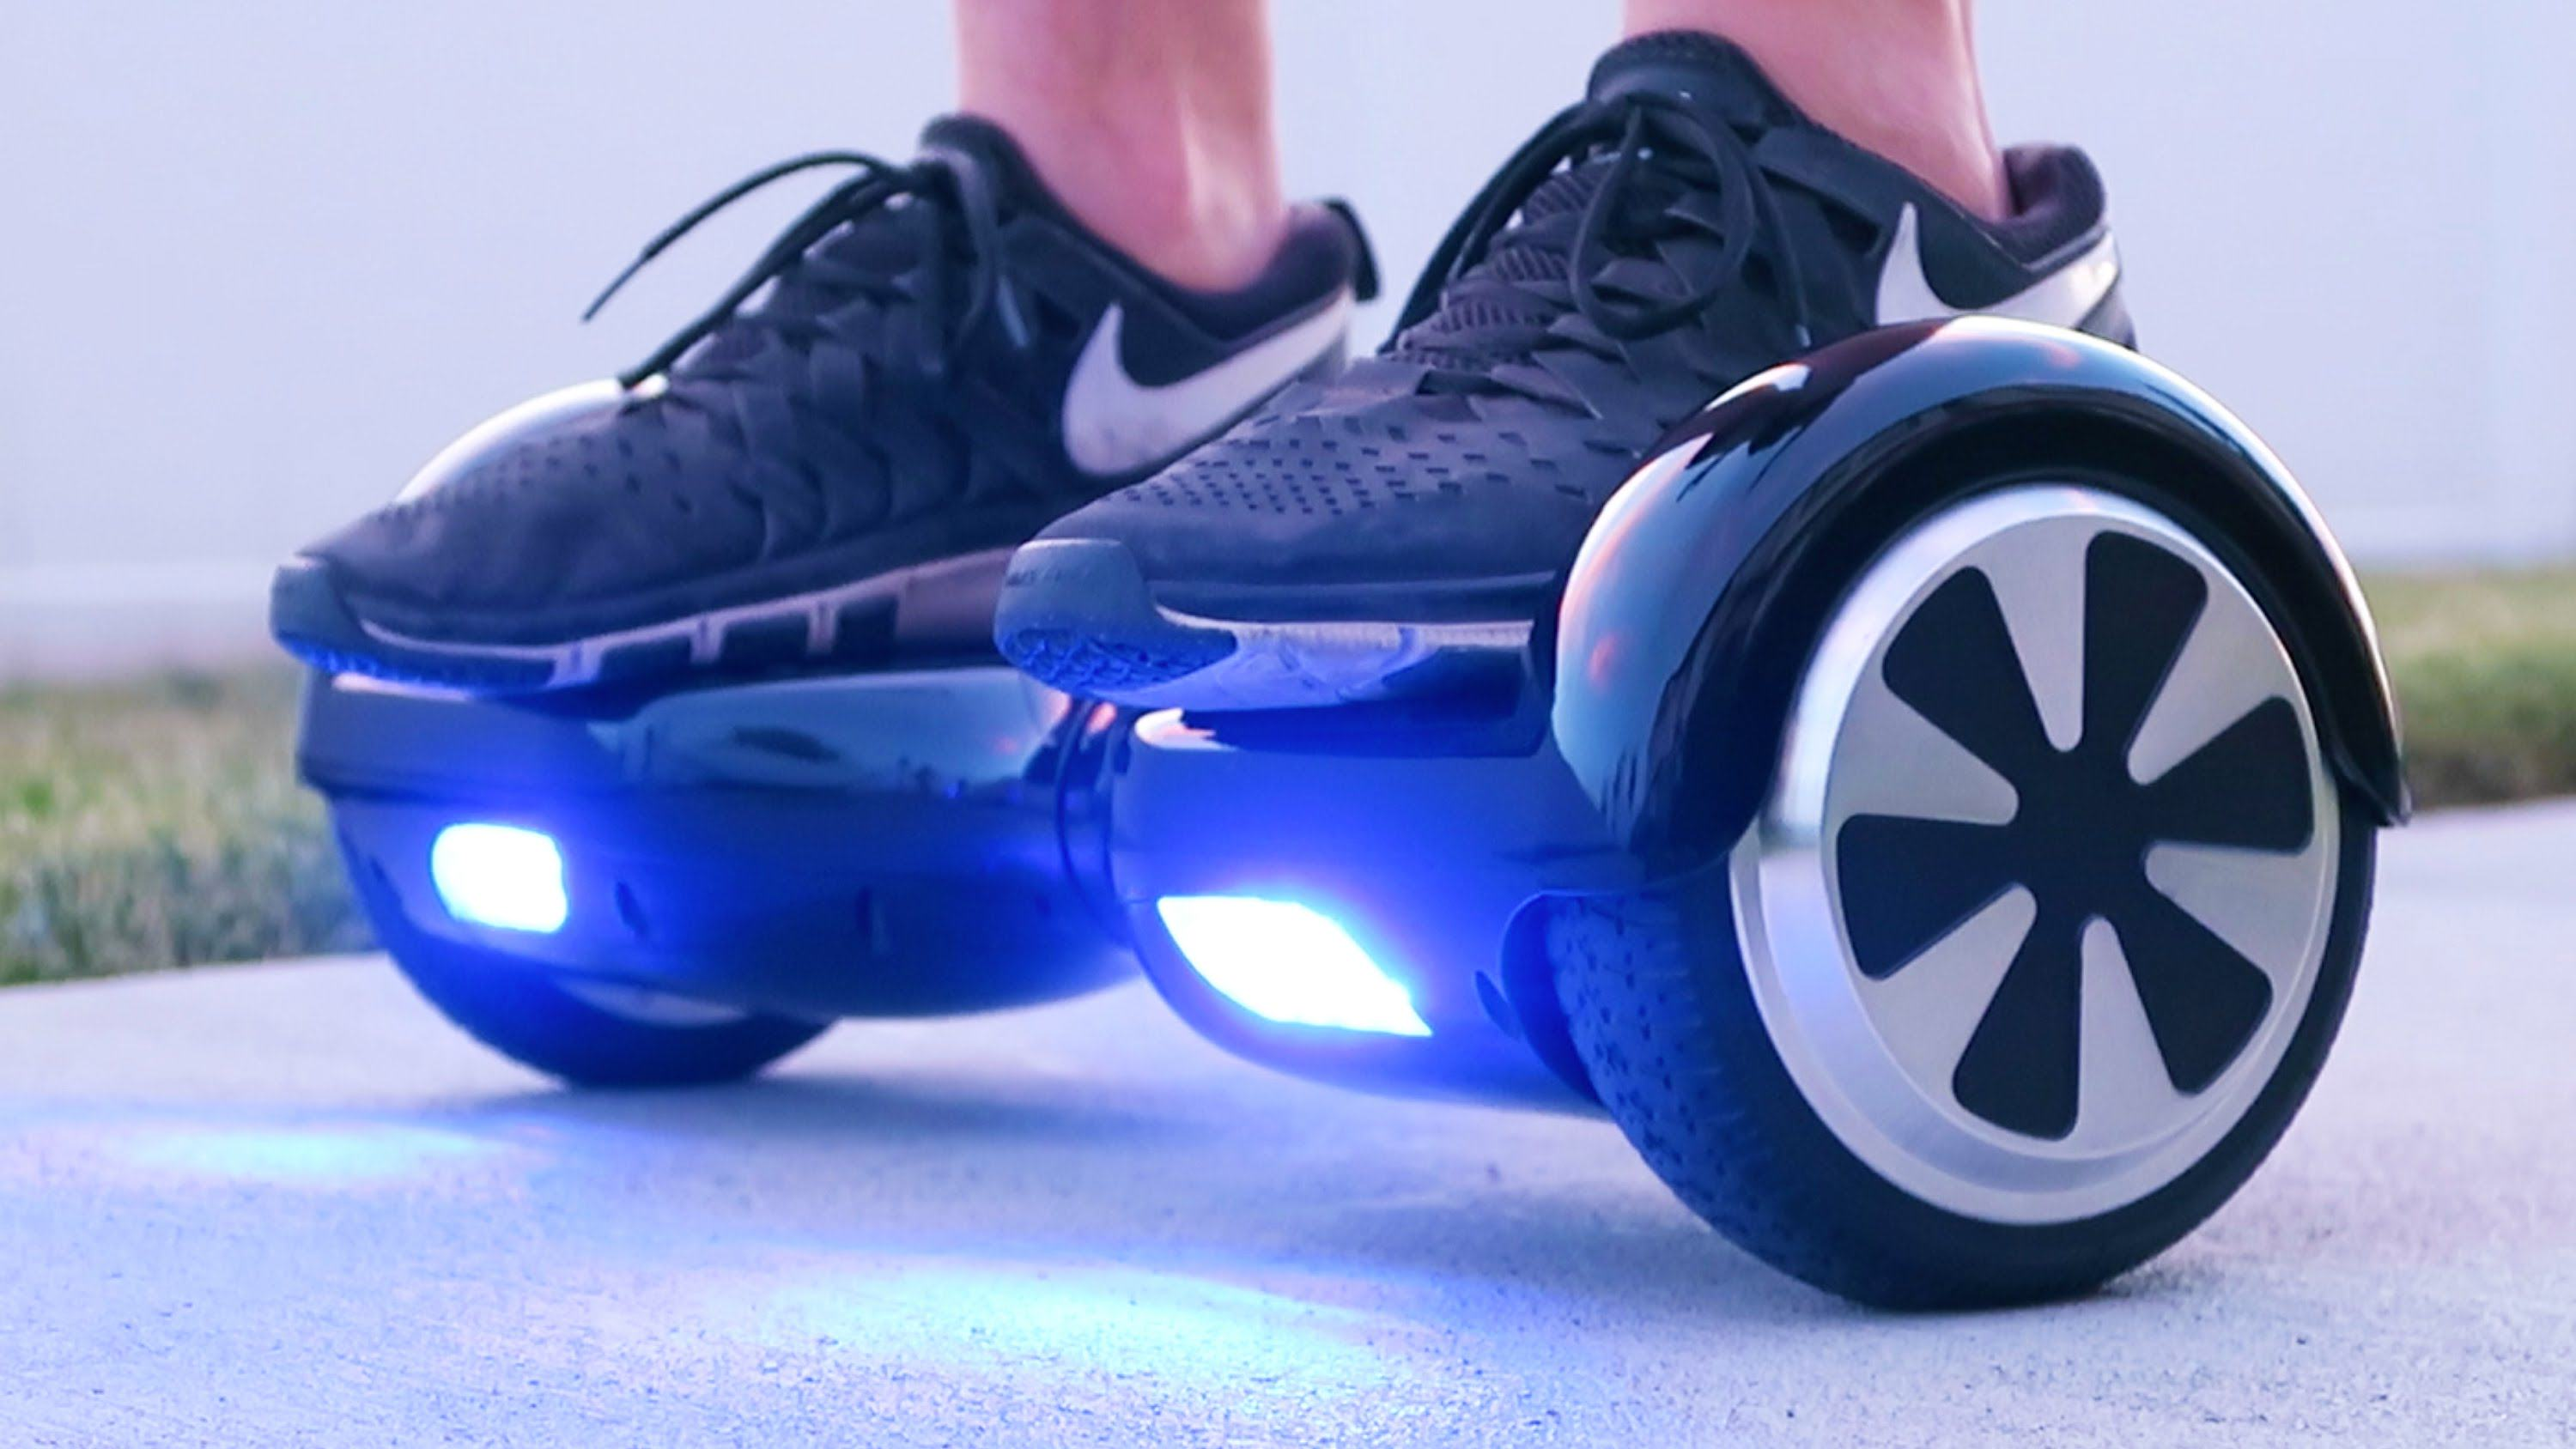 Watch The Holy Roller Priest Who Was Suspended For Riding A Hoverboard priest10